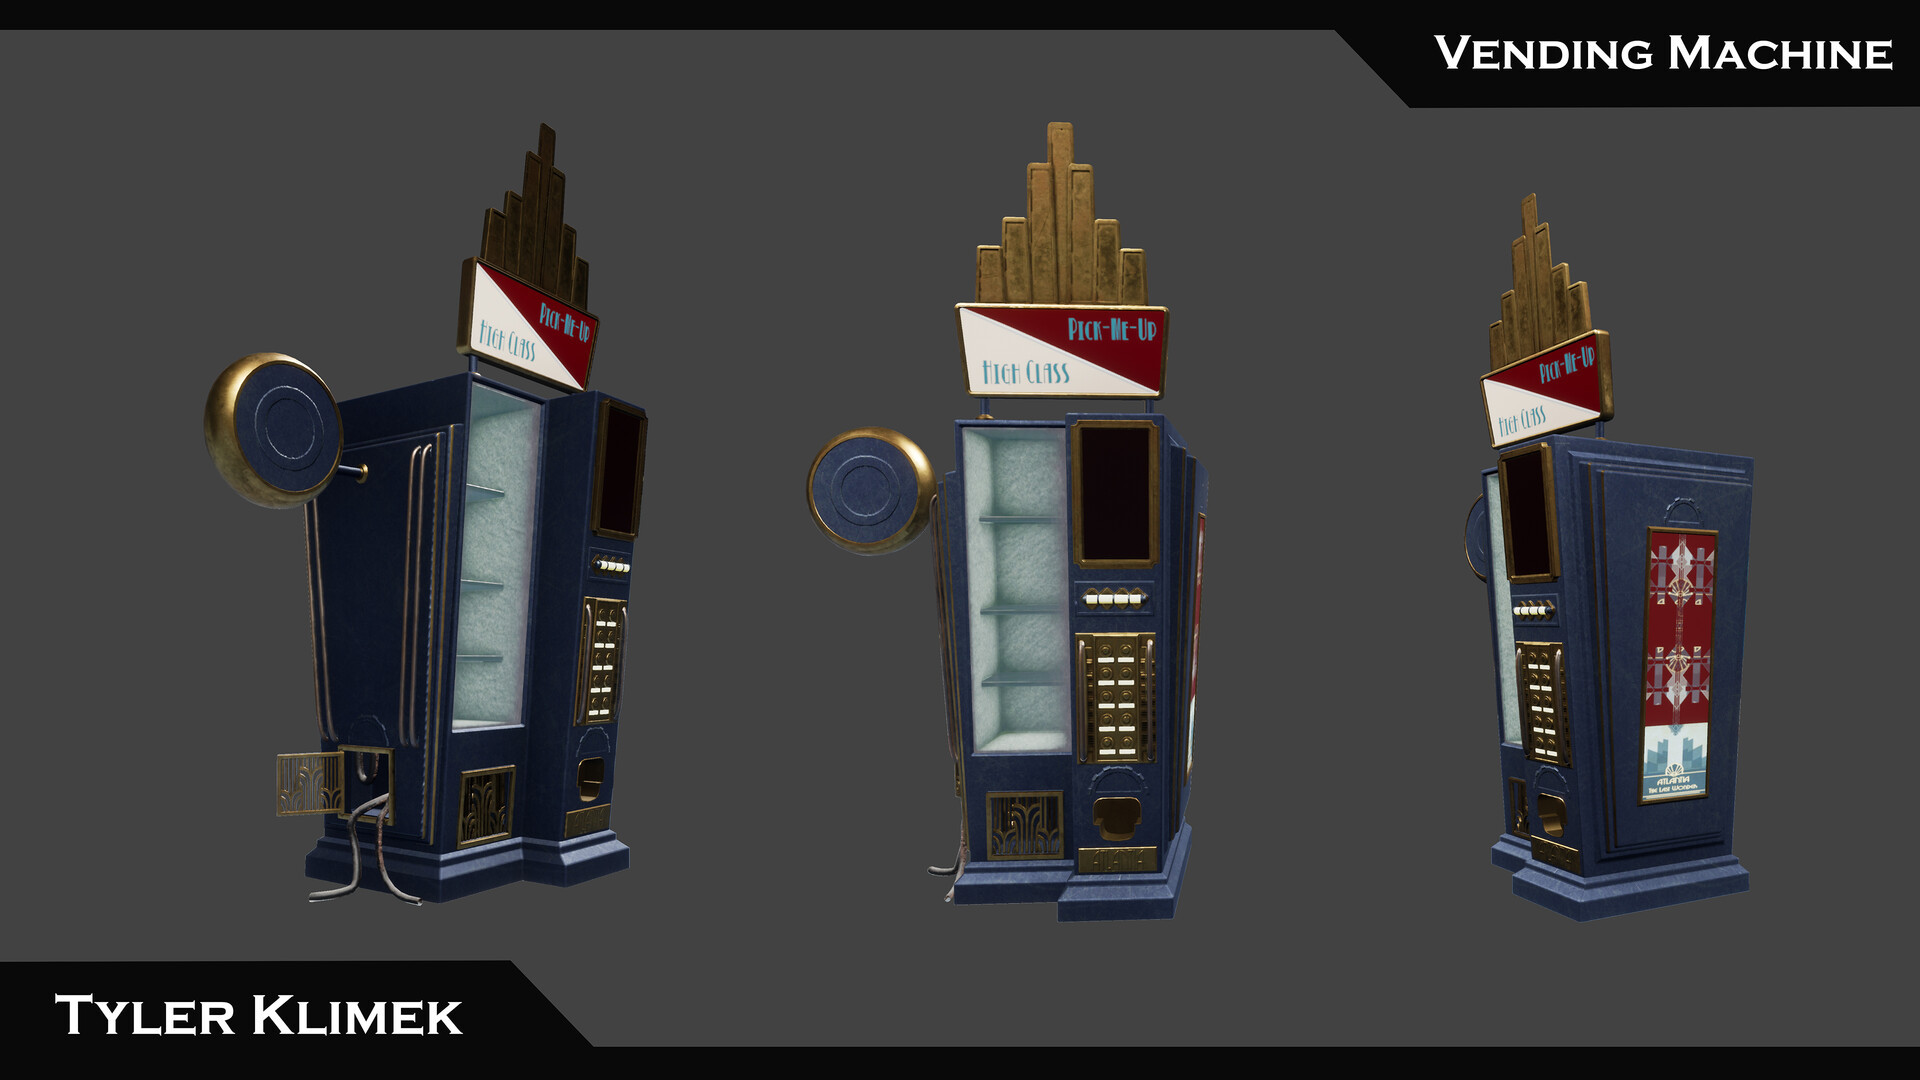 The vending machine asset I made for the scene. This design was extremely influenced by bioshock